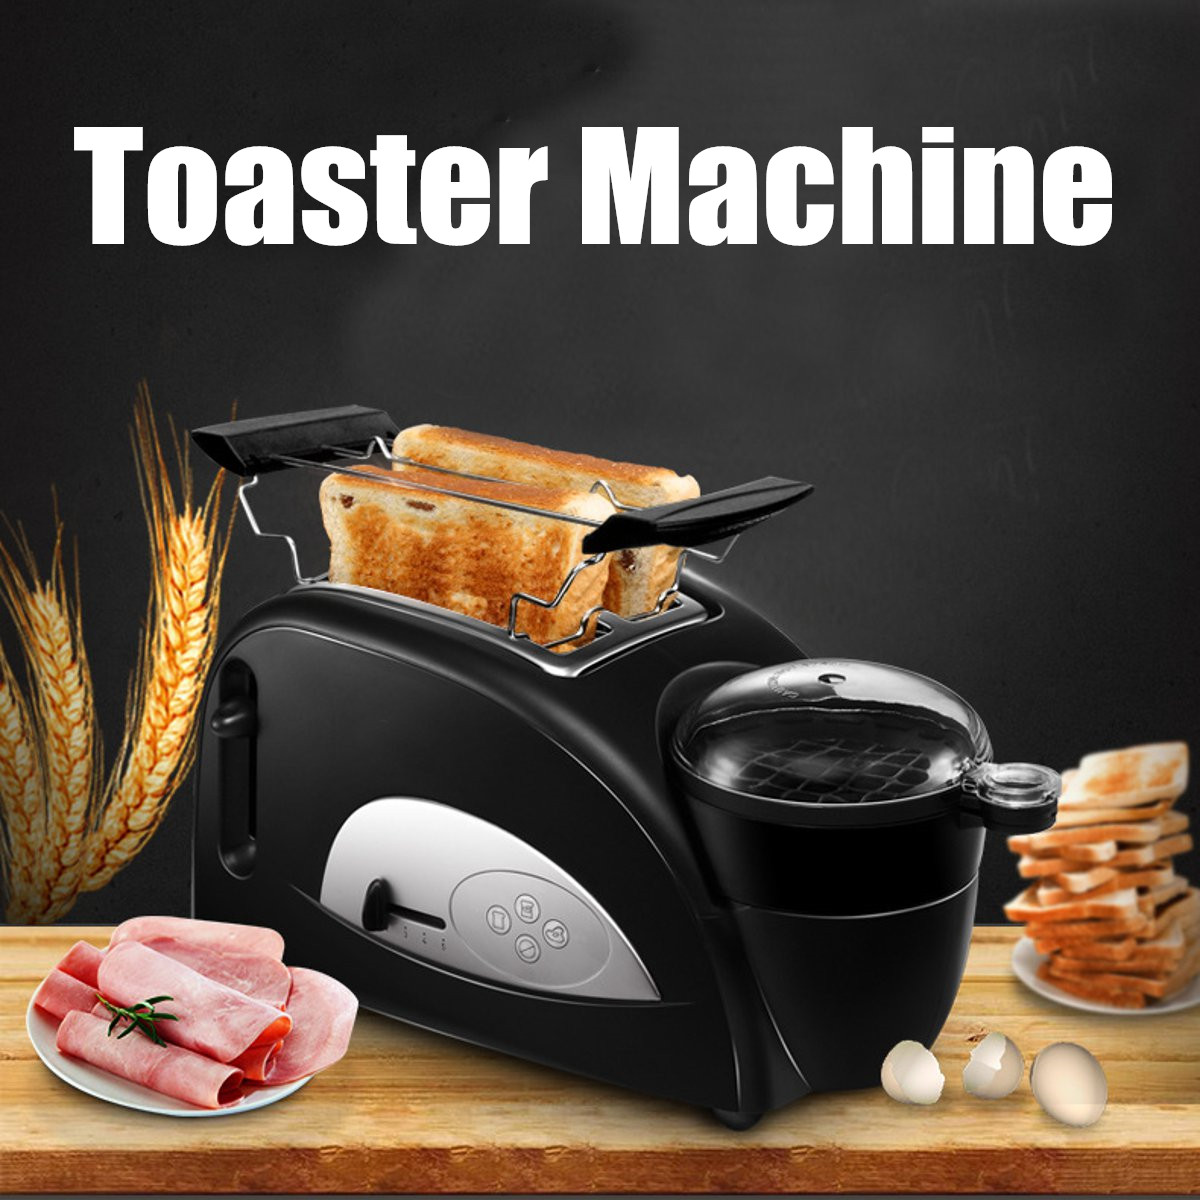 Multifunctional 2 in 1 Stainless Steel 2 Slices Bread Toaster Electric Egg Cooker Breakfast Maker Household Kitchen Oven Machine